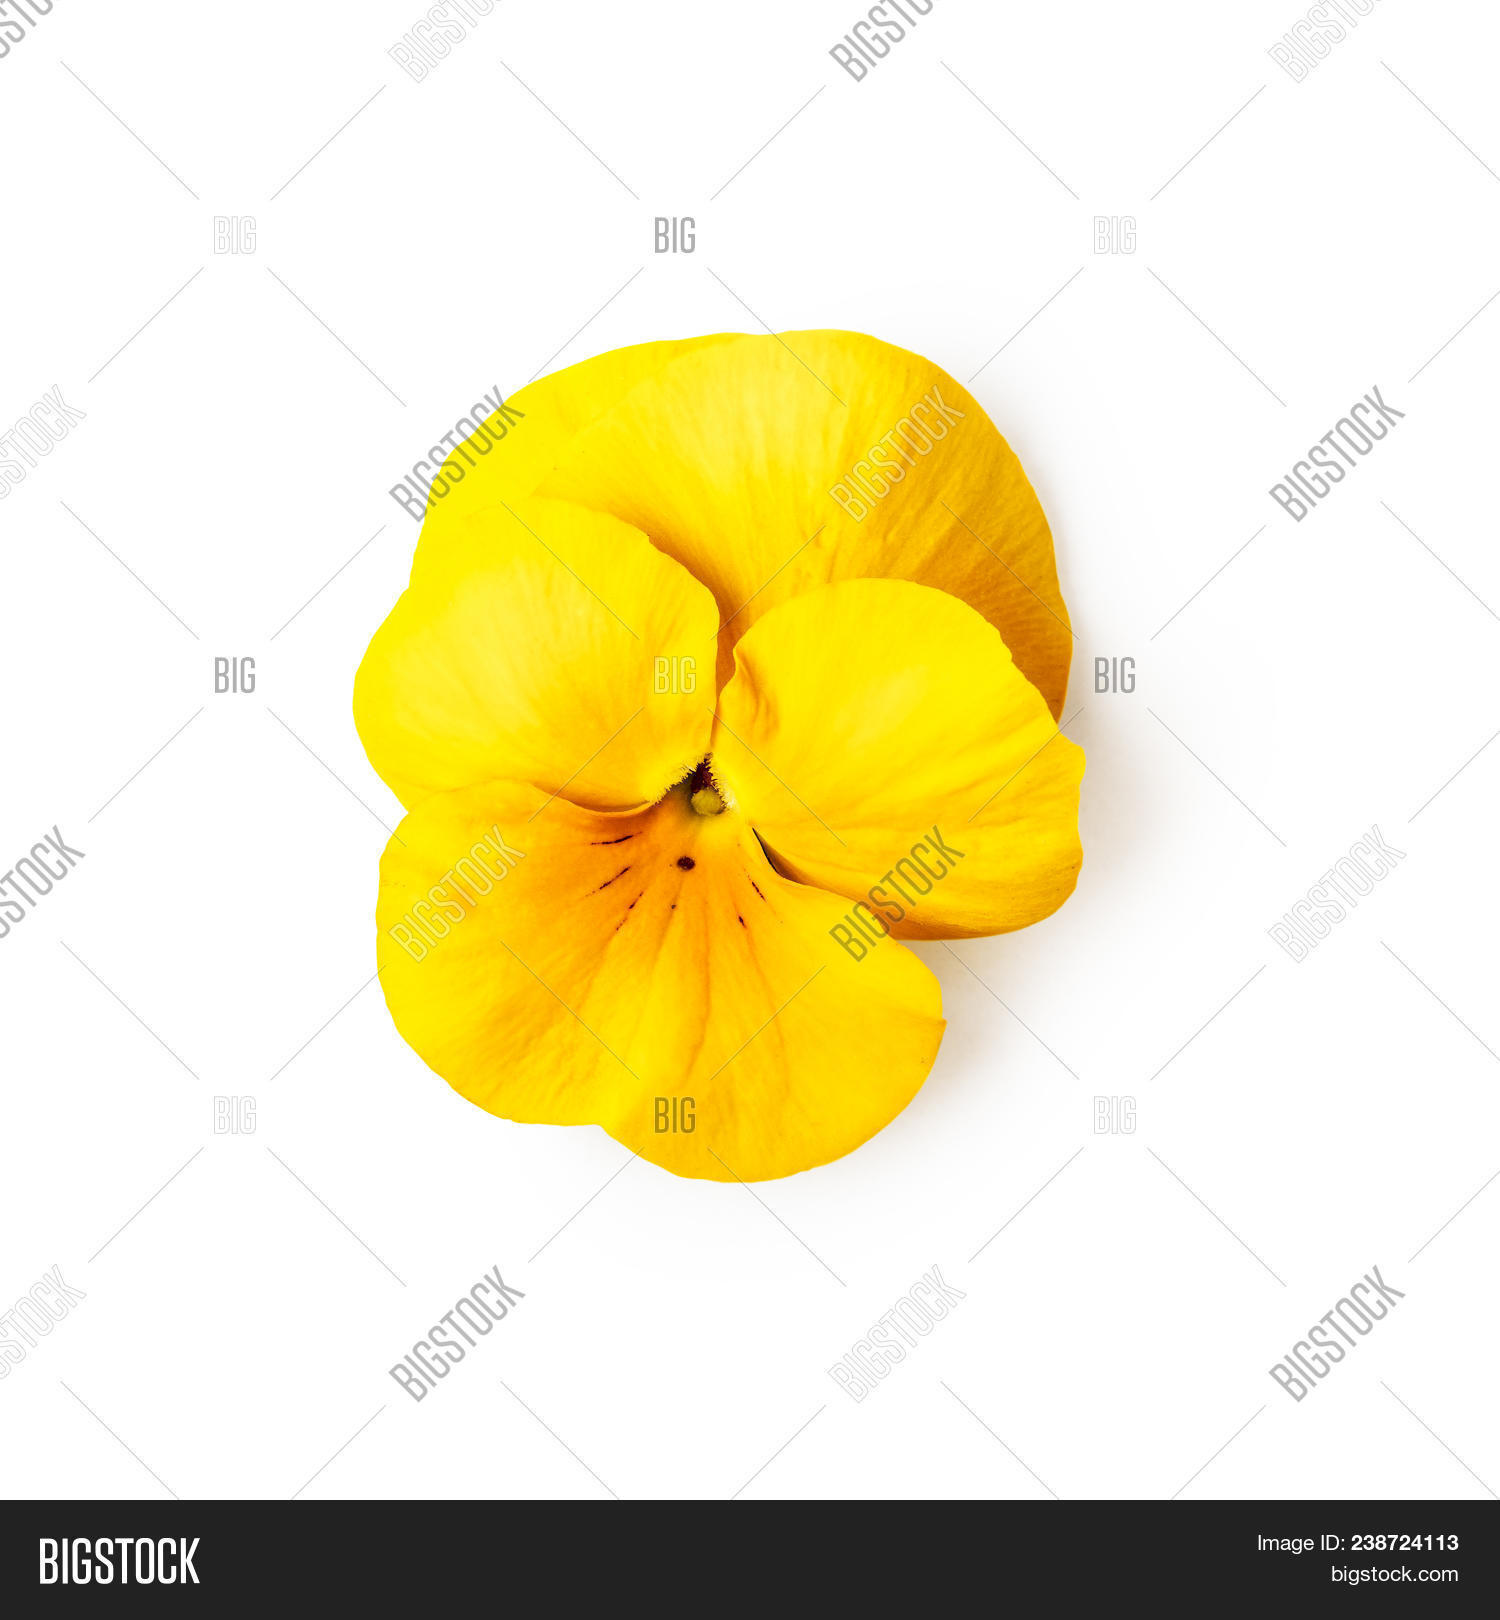 Yellow Pansy Flower Image Photo Free Trial Bigstock